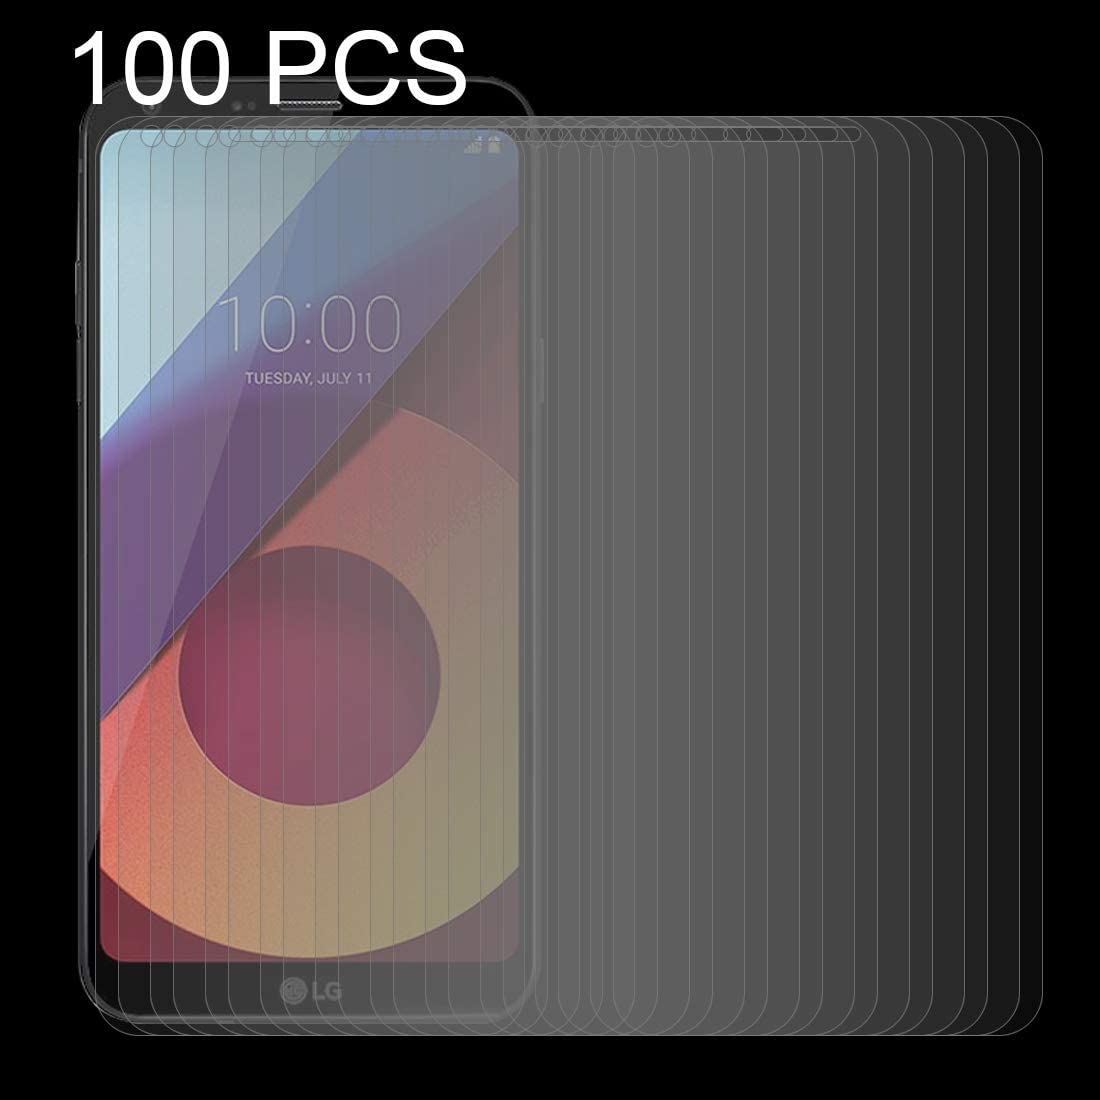 GUOSHU Premium Tempered Glass Screen Film 100 PCS for Asus Zenfone 3 0.26mm 9H Surface Hardness 2.5D Curved Edge Tempered Glass Screen Protector Anti-Scratch Screen Protector ZE520KL